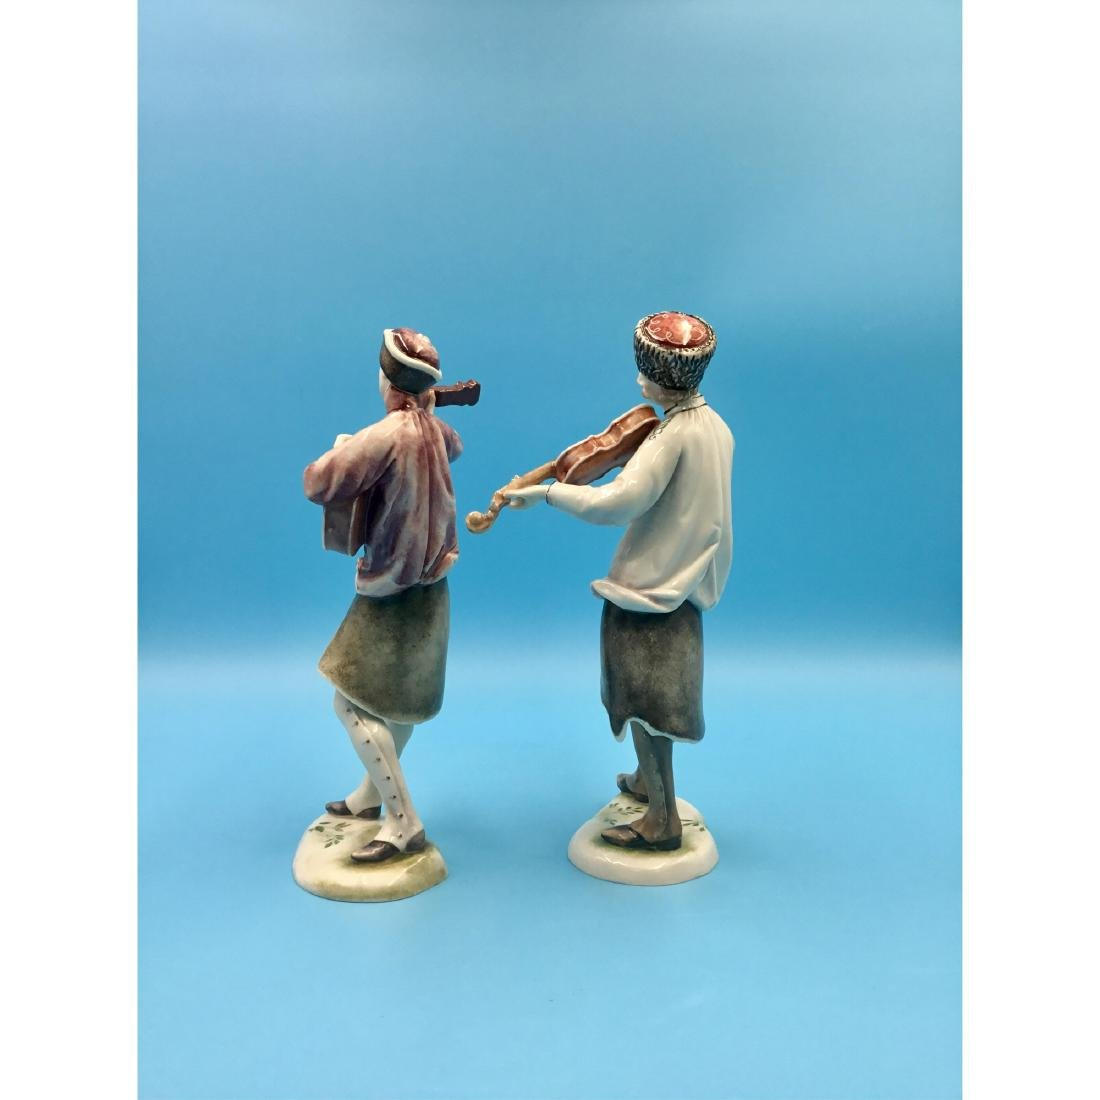 NYMPHENBURG GERMAN PORCELAIN MUSICIANS FIGURINES - 2